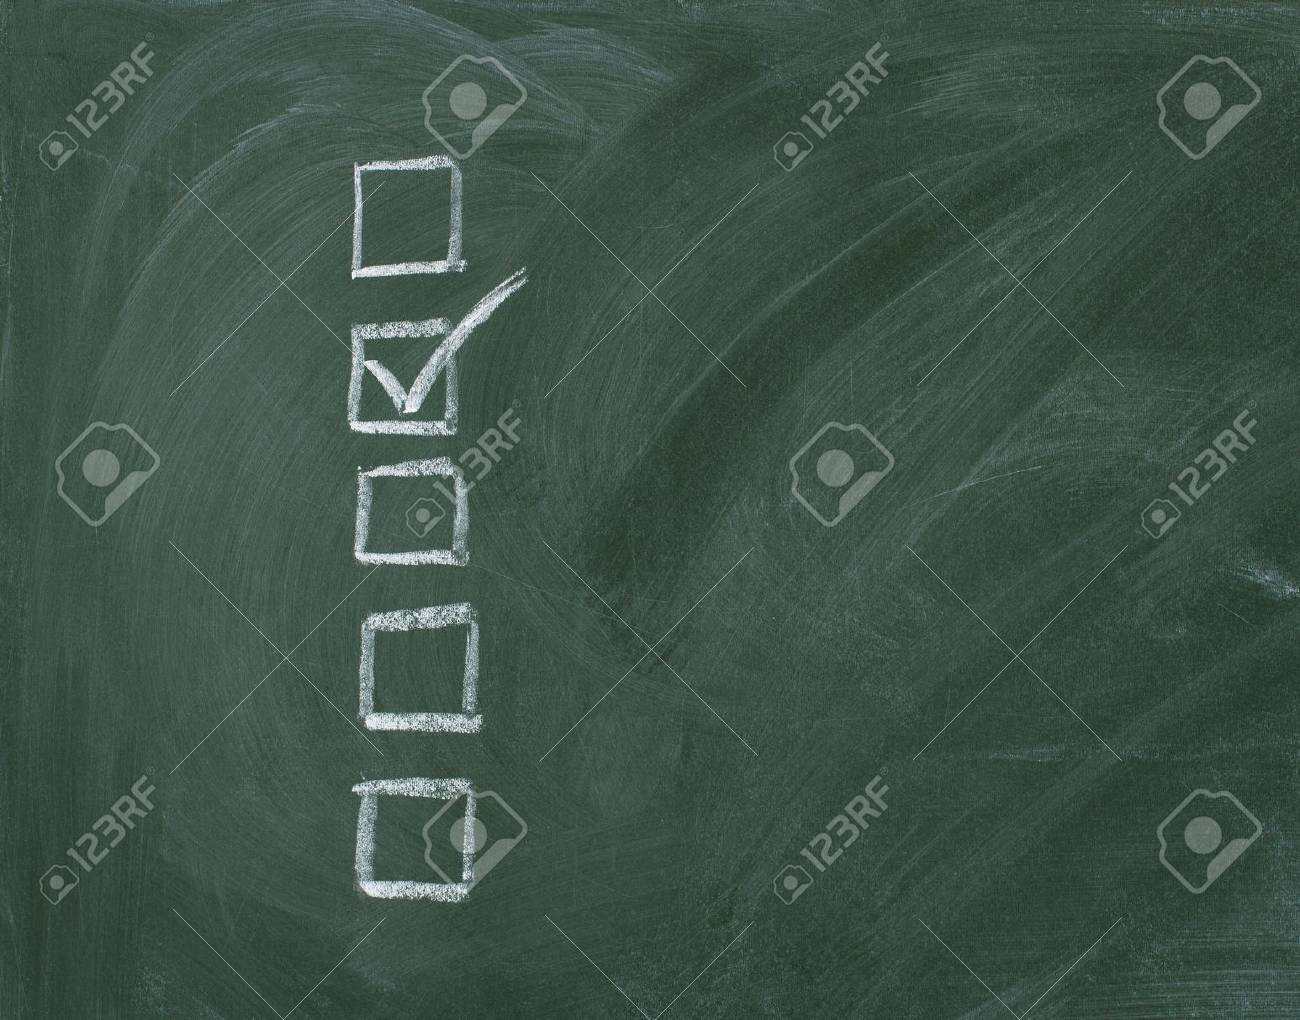 Checklist at the blackboard with copy space Stock Photo - 12863513